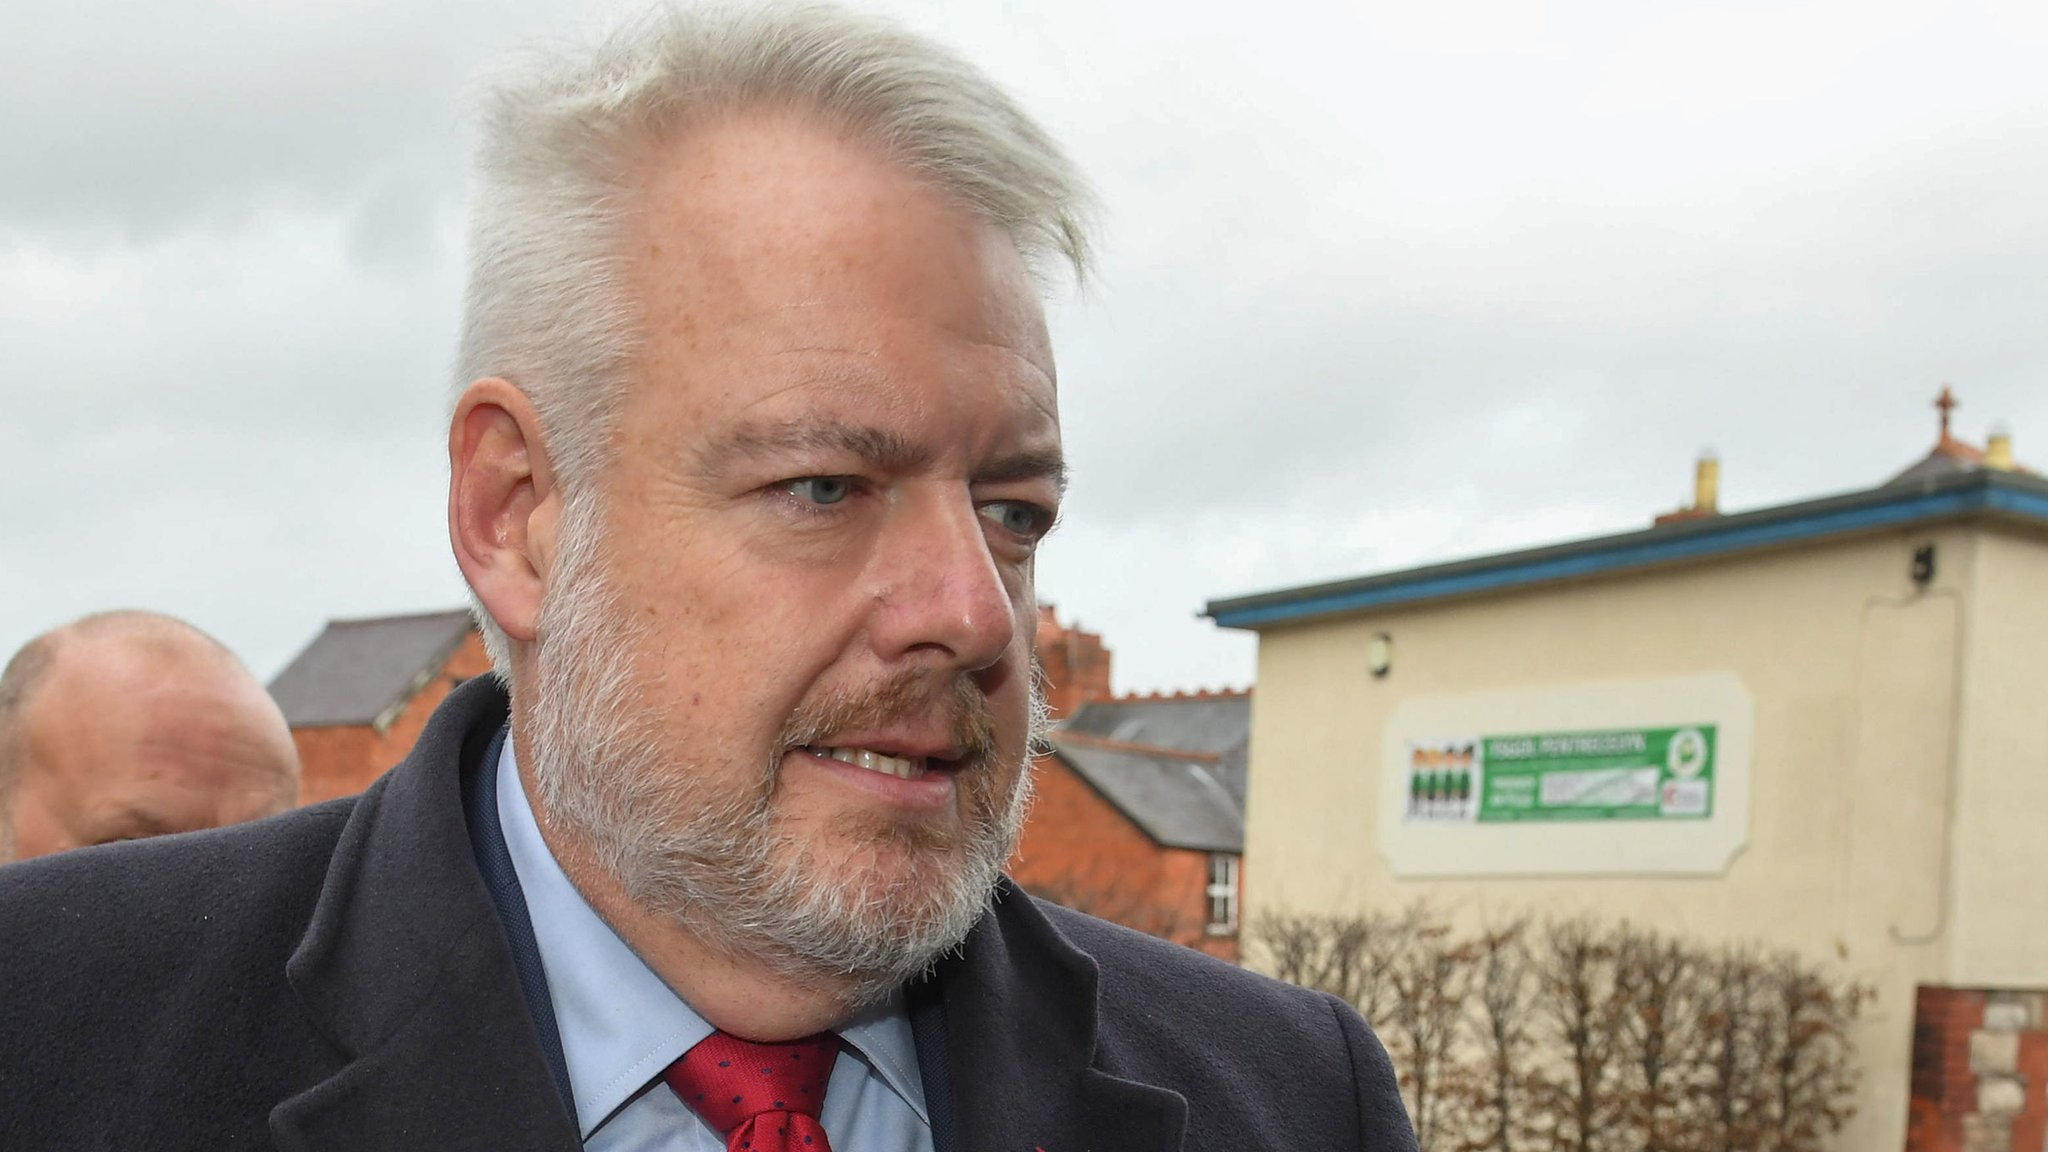 Carwyn Jones considered quitting over Carl Sargeant death